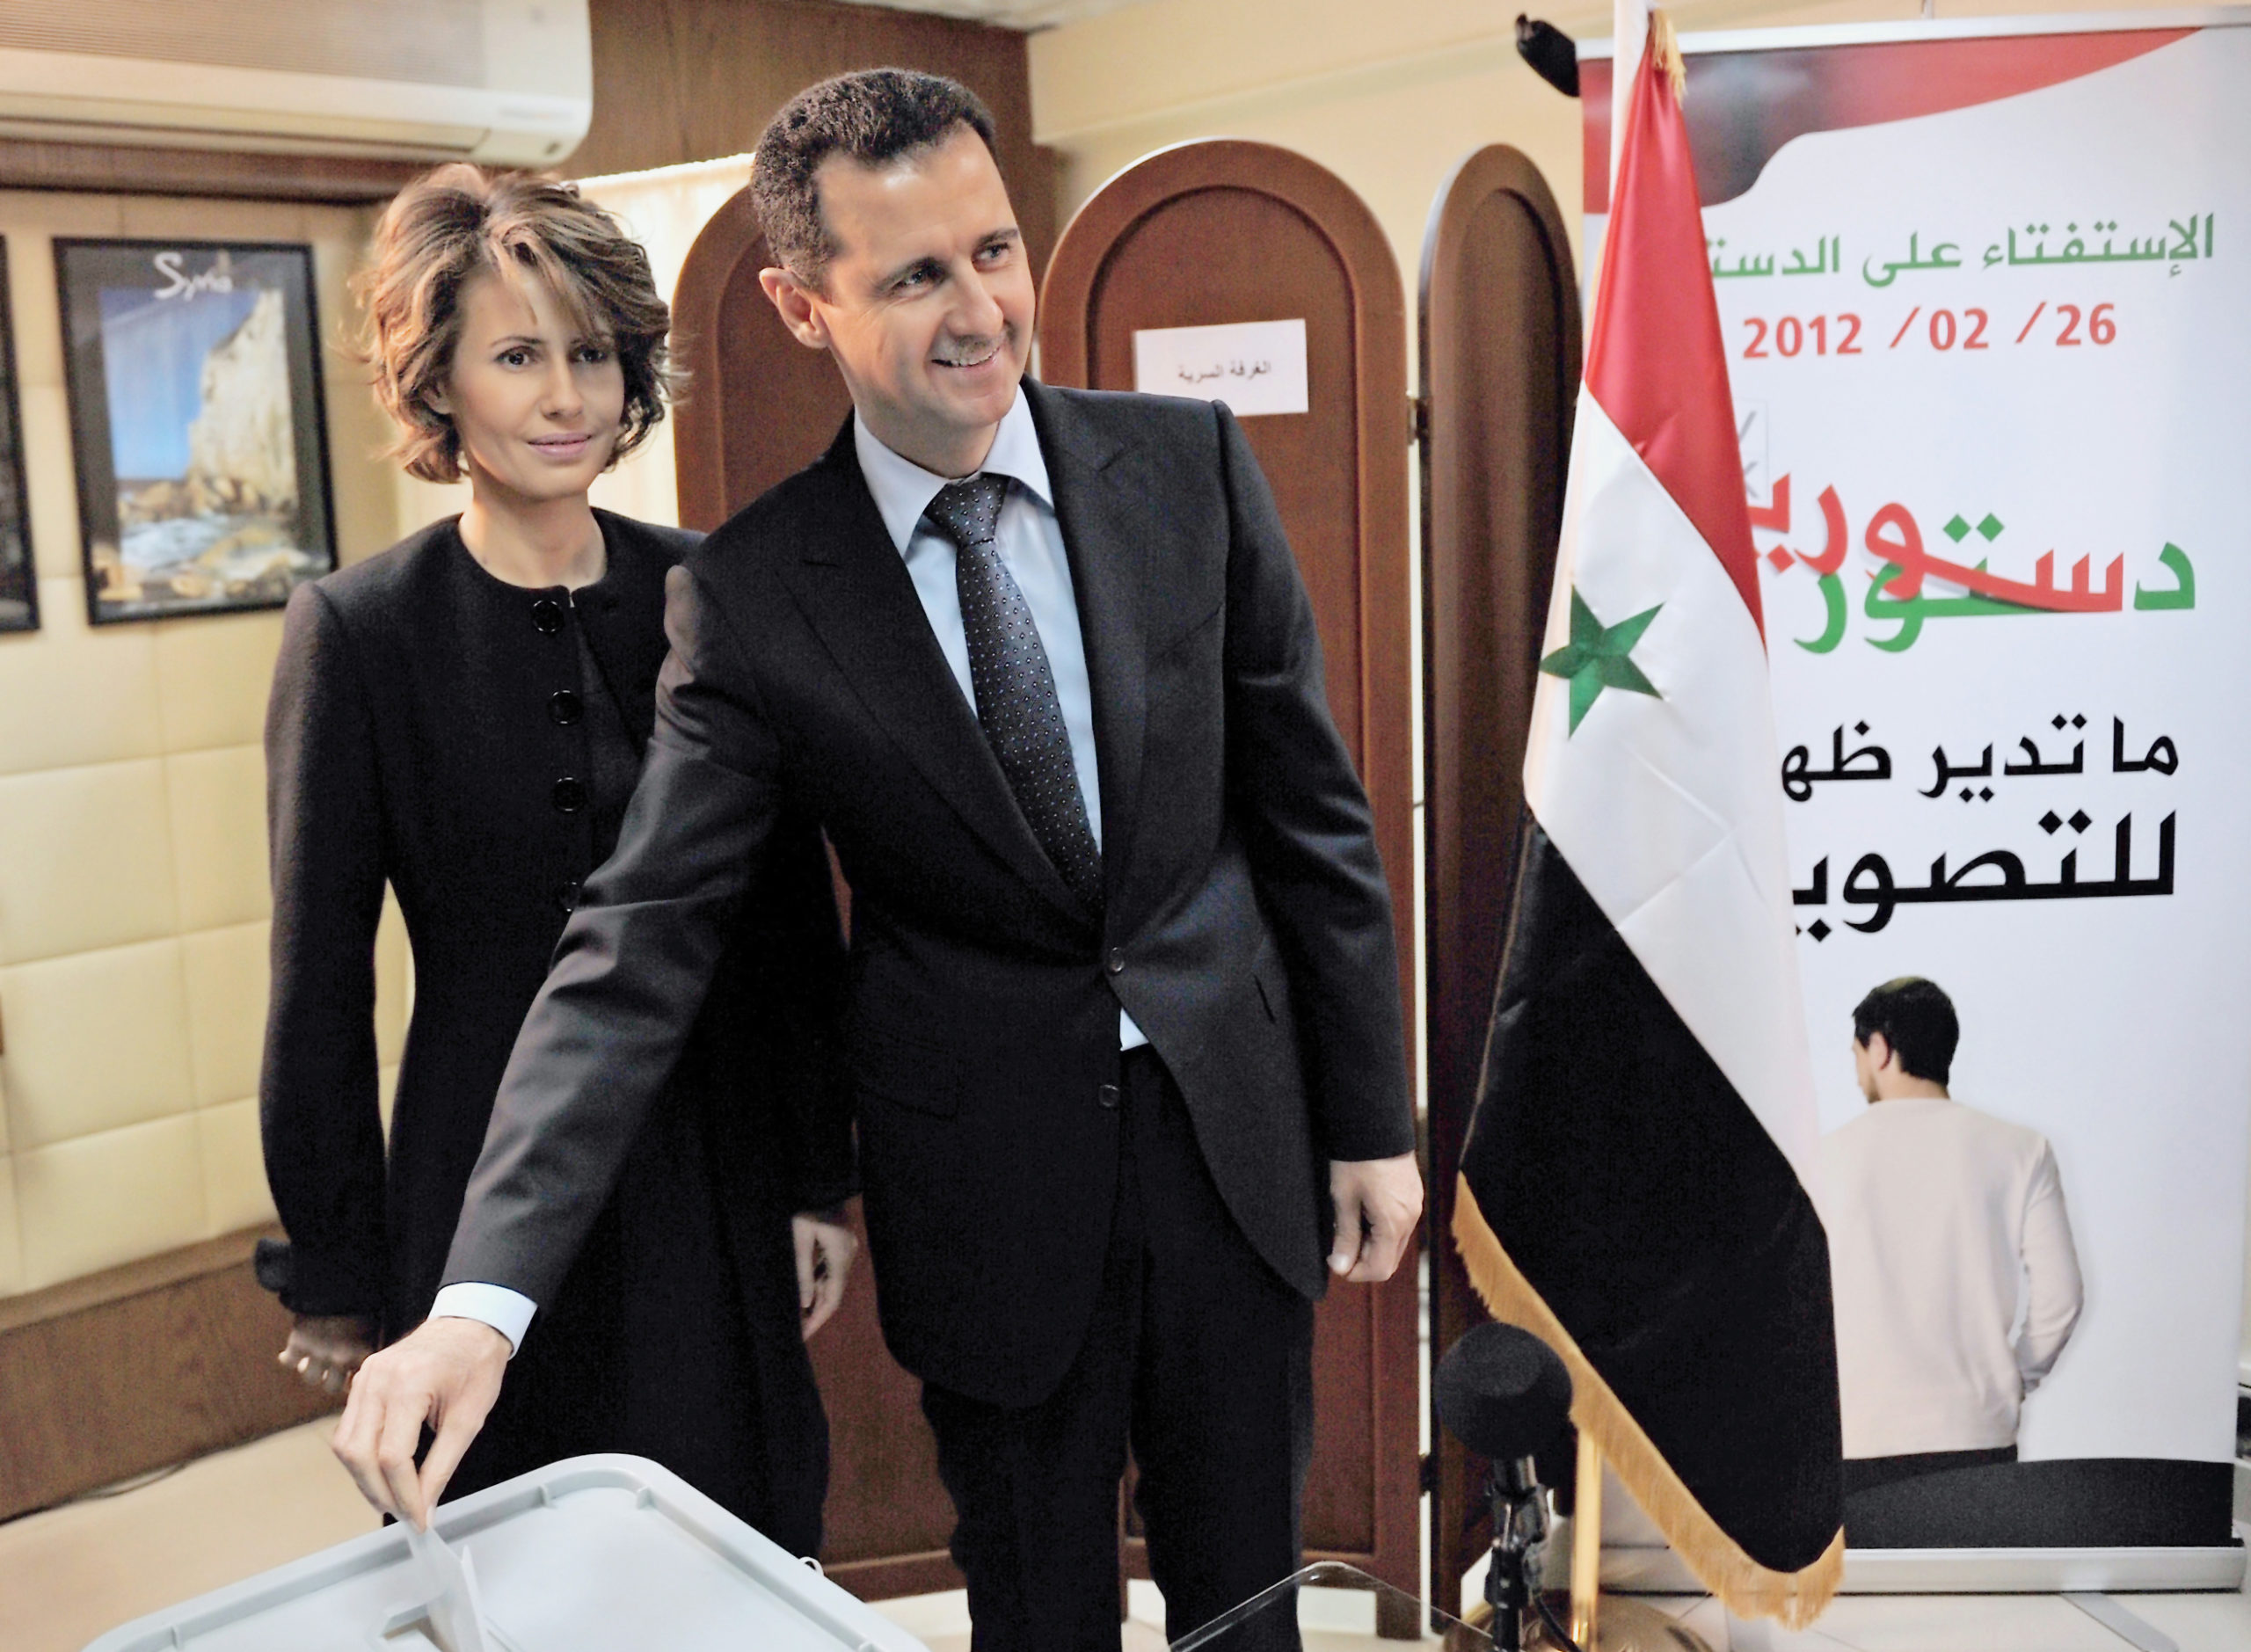 Syrian President Bashar Assad cats a ballot as his wife Asma looks on at a polling station in Damascus. (SANA/AFP via Getty Images)